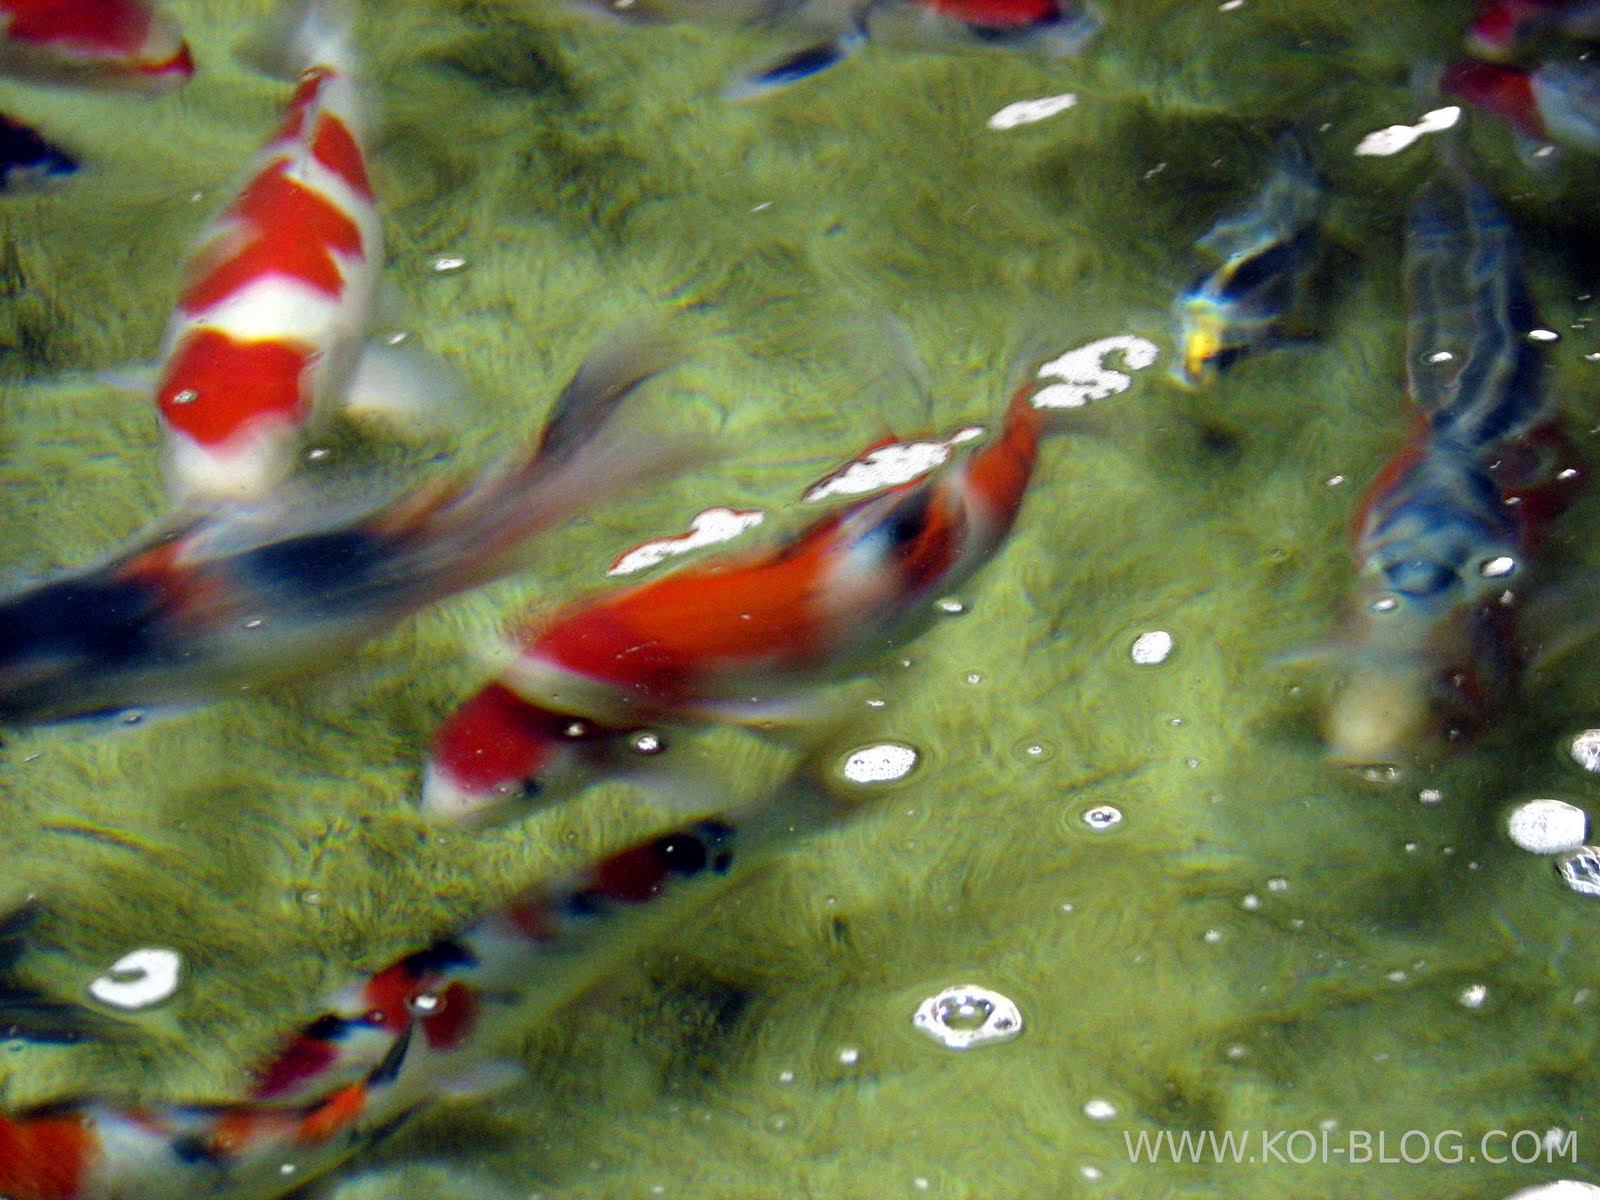 Koi blog koi fish varieties for Koi carp varieties